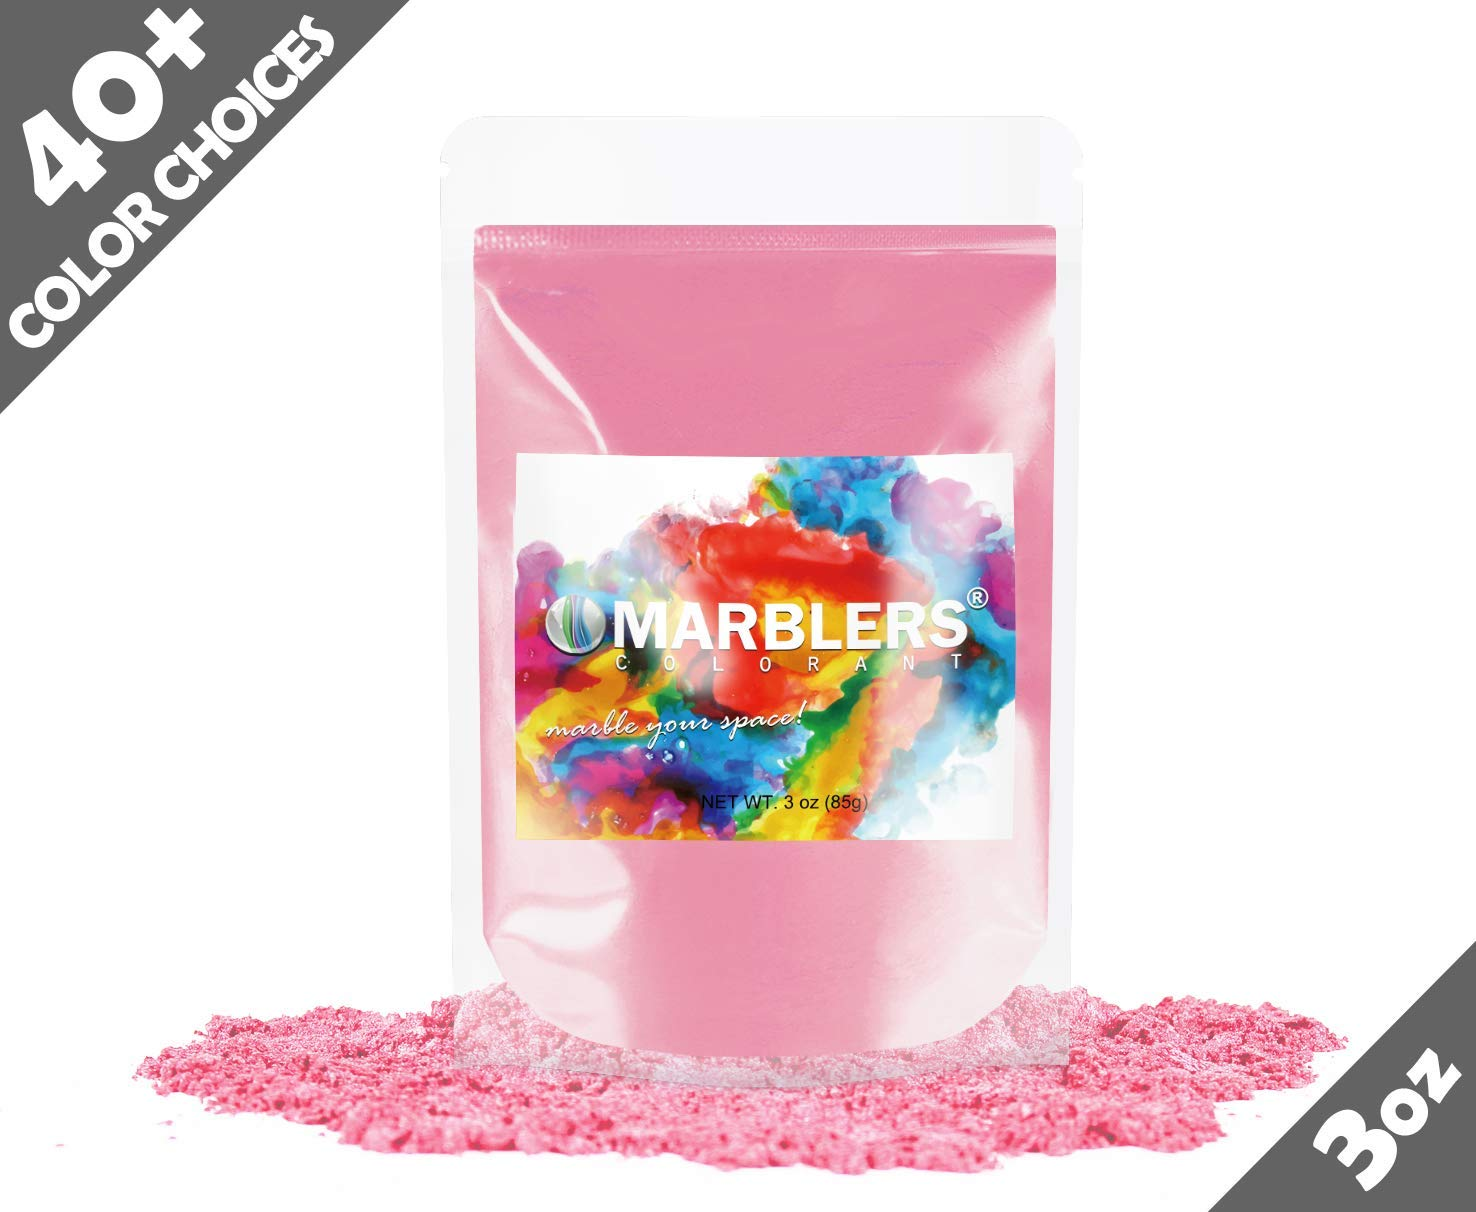 Marblers Powder Colorant 3oz (85g) [Pink]   Pearlescent Pigment   Tint   Pure Mica Powder for Resin   Dye   Non-Toxic   Great for Epoxy, Soap, Nail Polish, Cosmetics and Bath Bombs